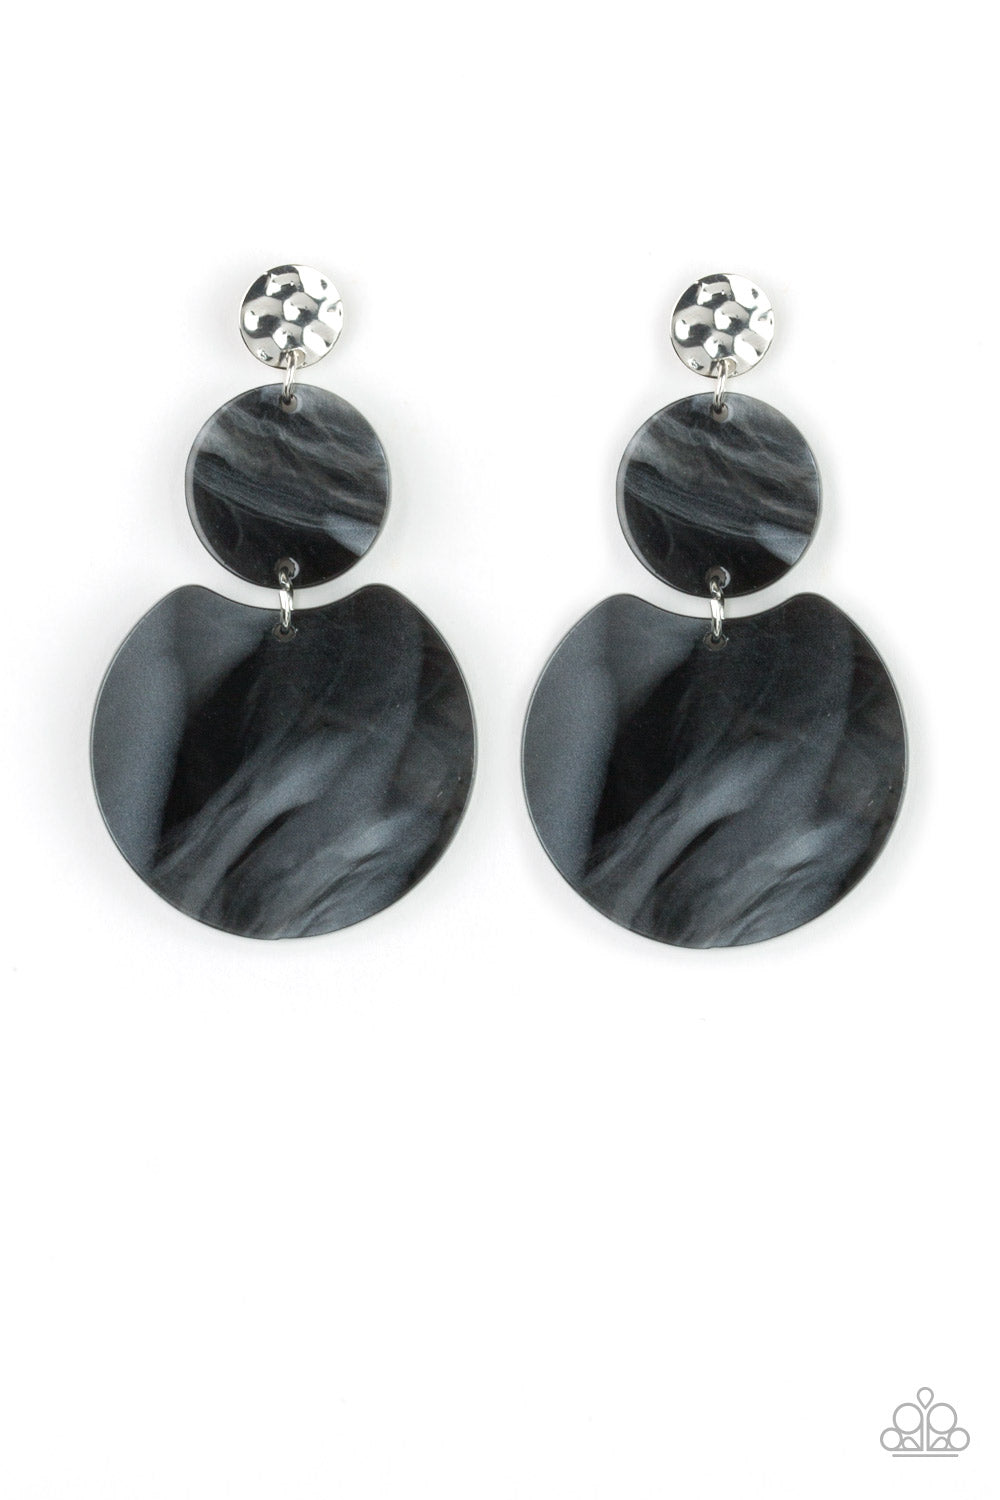 Paparazzi Miami Mariner Black Retro Pierced Earrings